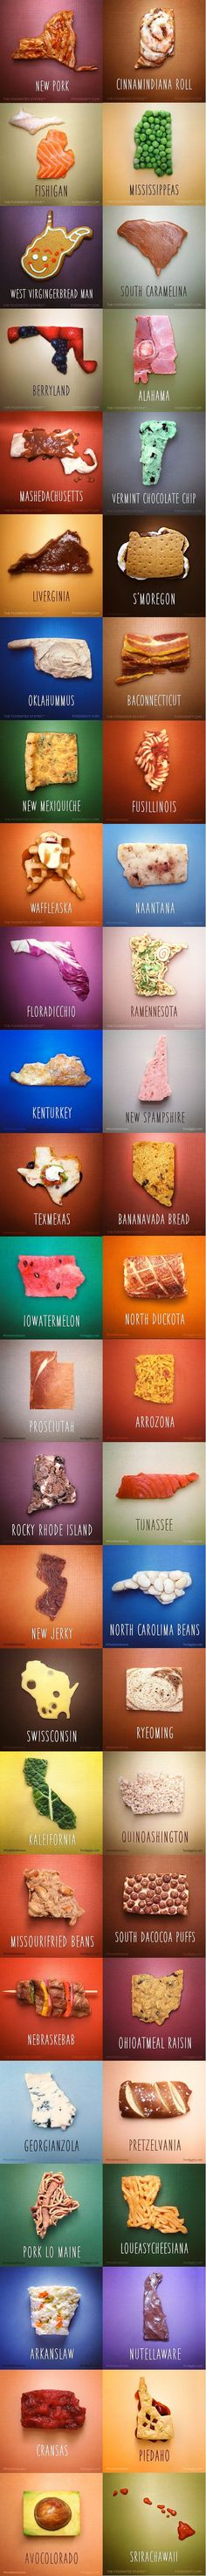 All 50 States Reimagined as Food Puns  http://lolsalot.com/all-50-states-reimagined-as-food-puns-3/  #Funny #Pic